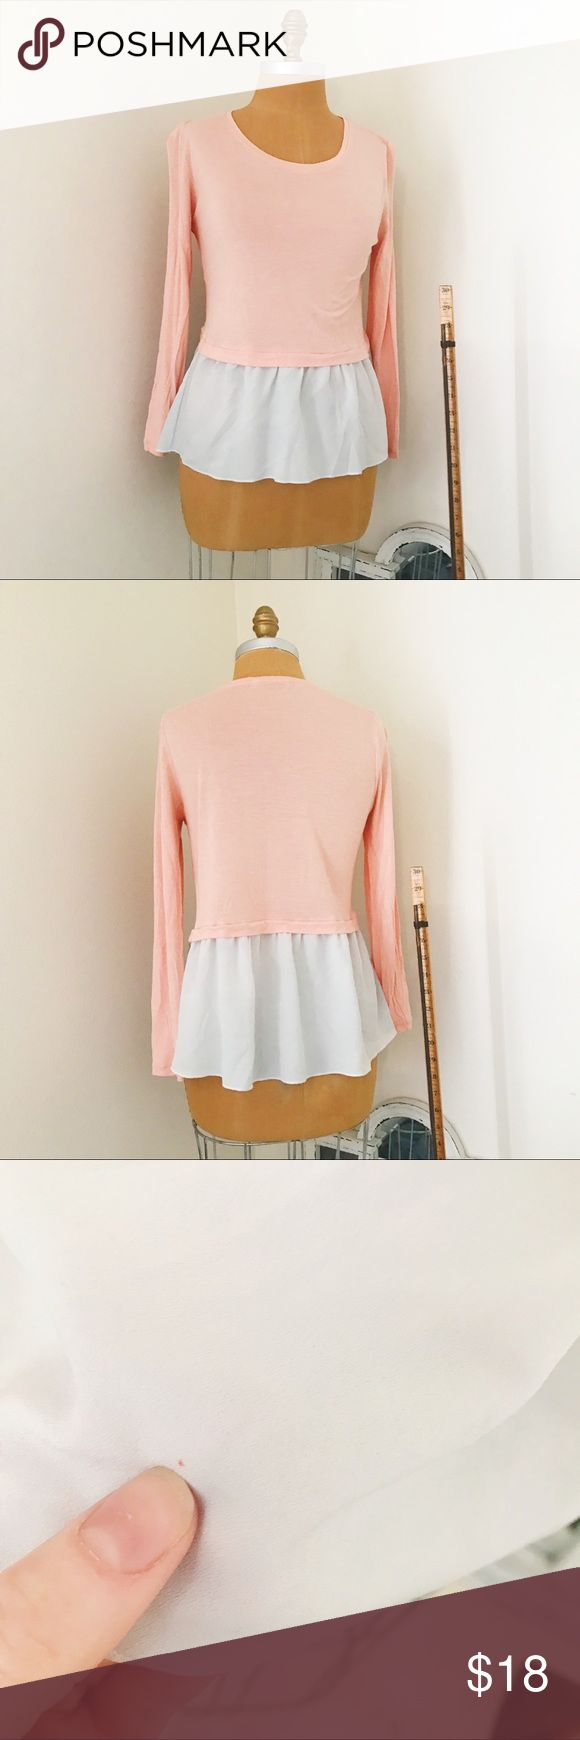 Hinge pink and white peplum top Hinge for Nordstrom. Perfect for transitiong into spring!  This silky soft two-tone peplum top has a pen tip sized red dot on the peplum portion (see picture), but other than that it is in amazing condition.  Smoke free/pet free house. Nordstrom Tops Tees - Long Sleeve